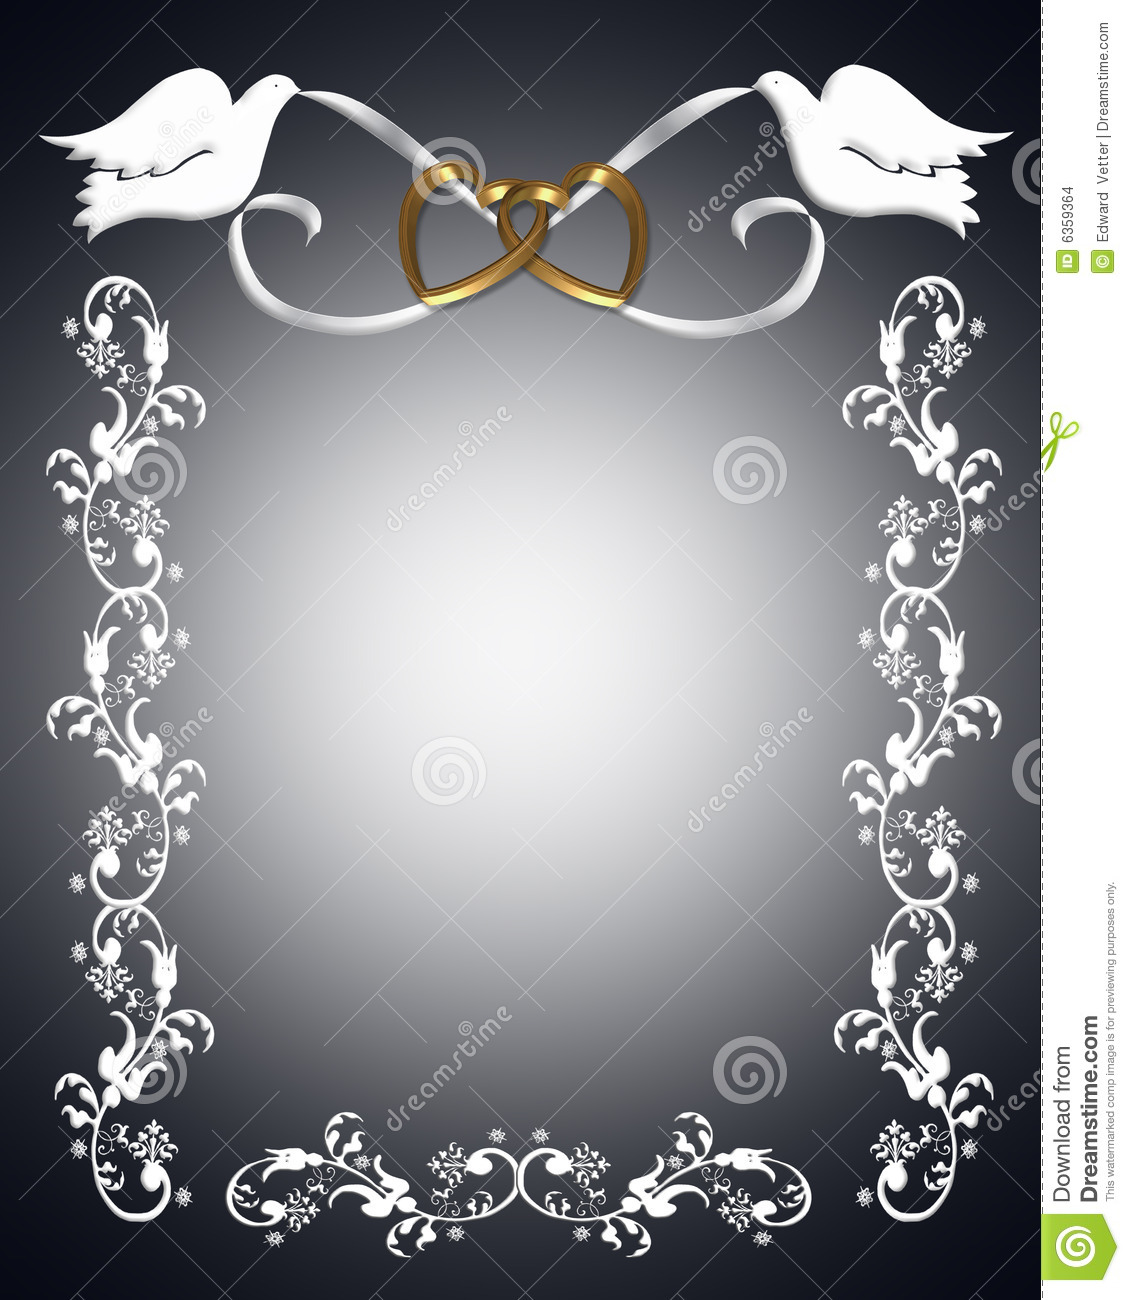 Wedding Invitation white doves